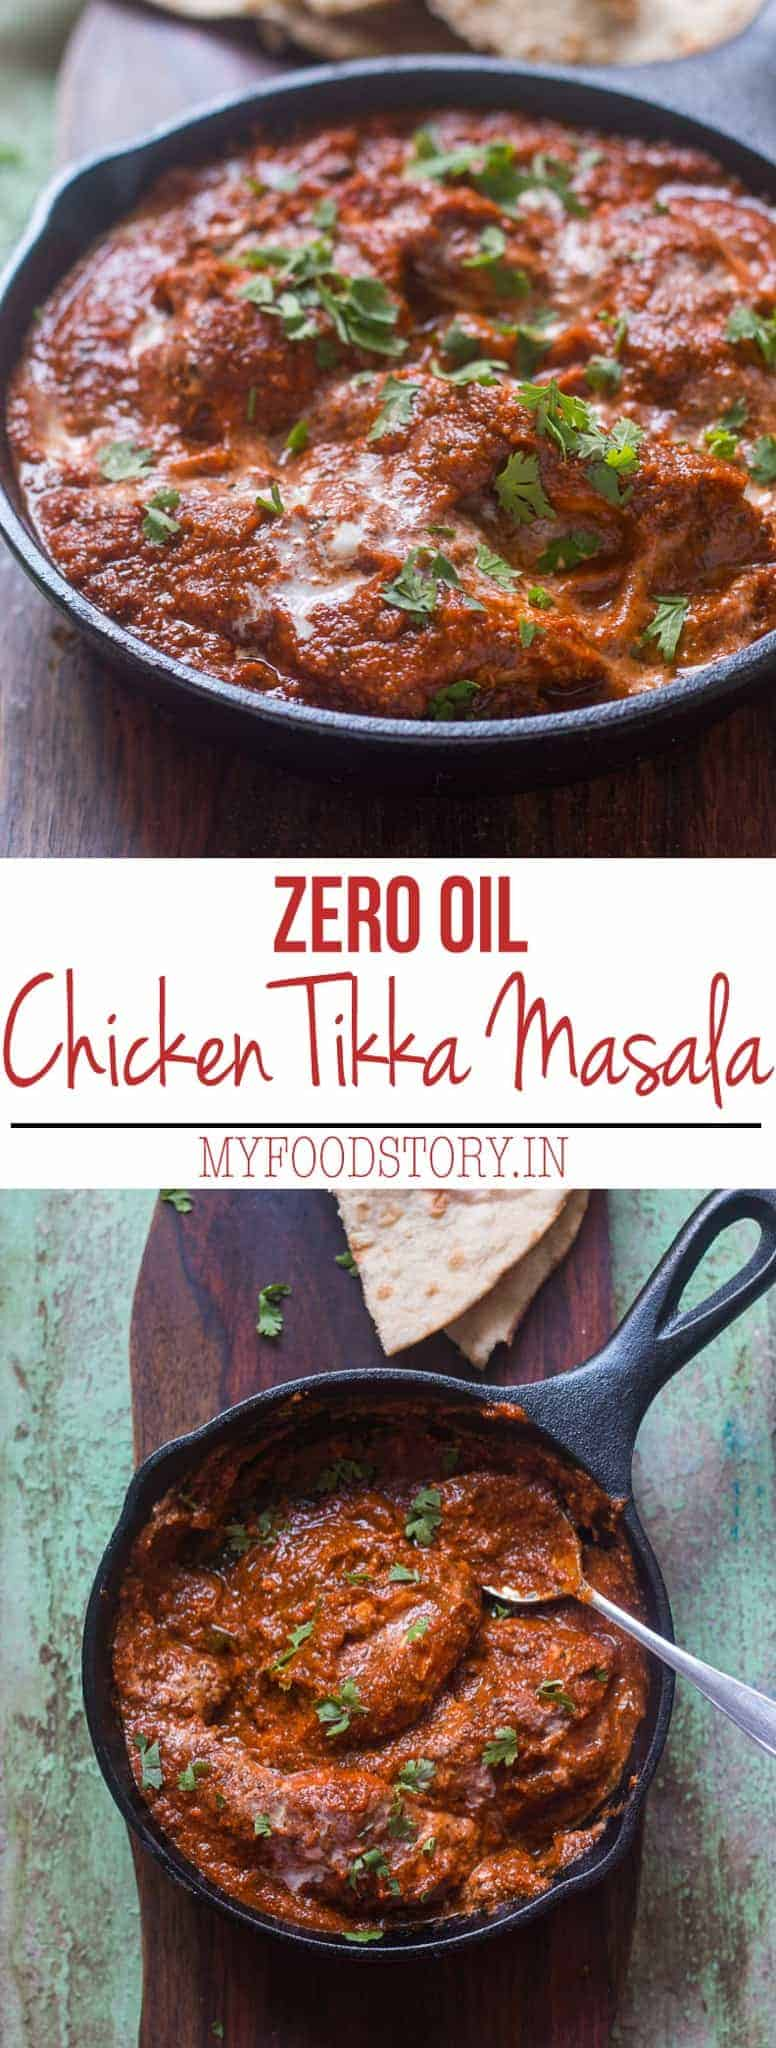 Zero Oil Chicken Tikka Masala